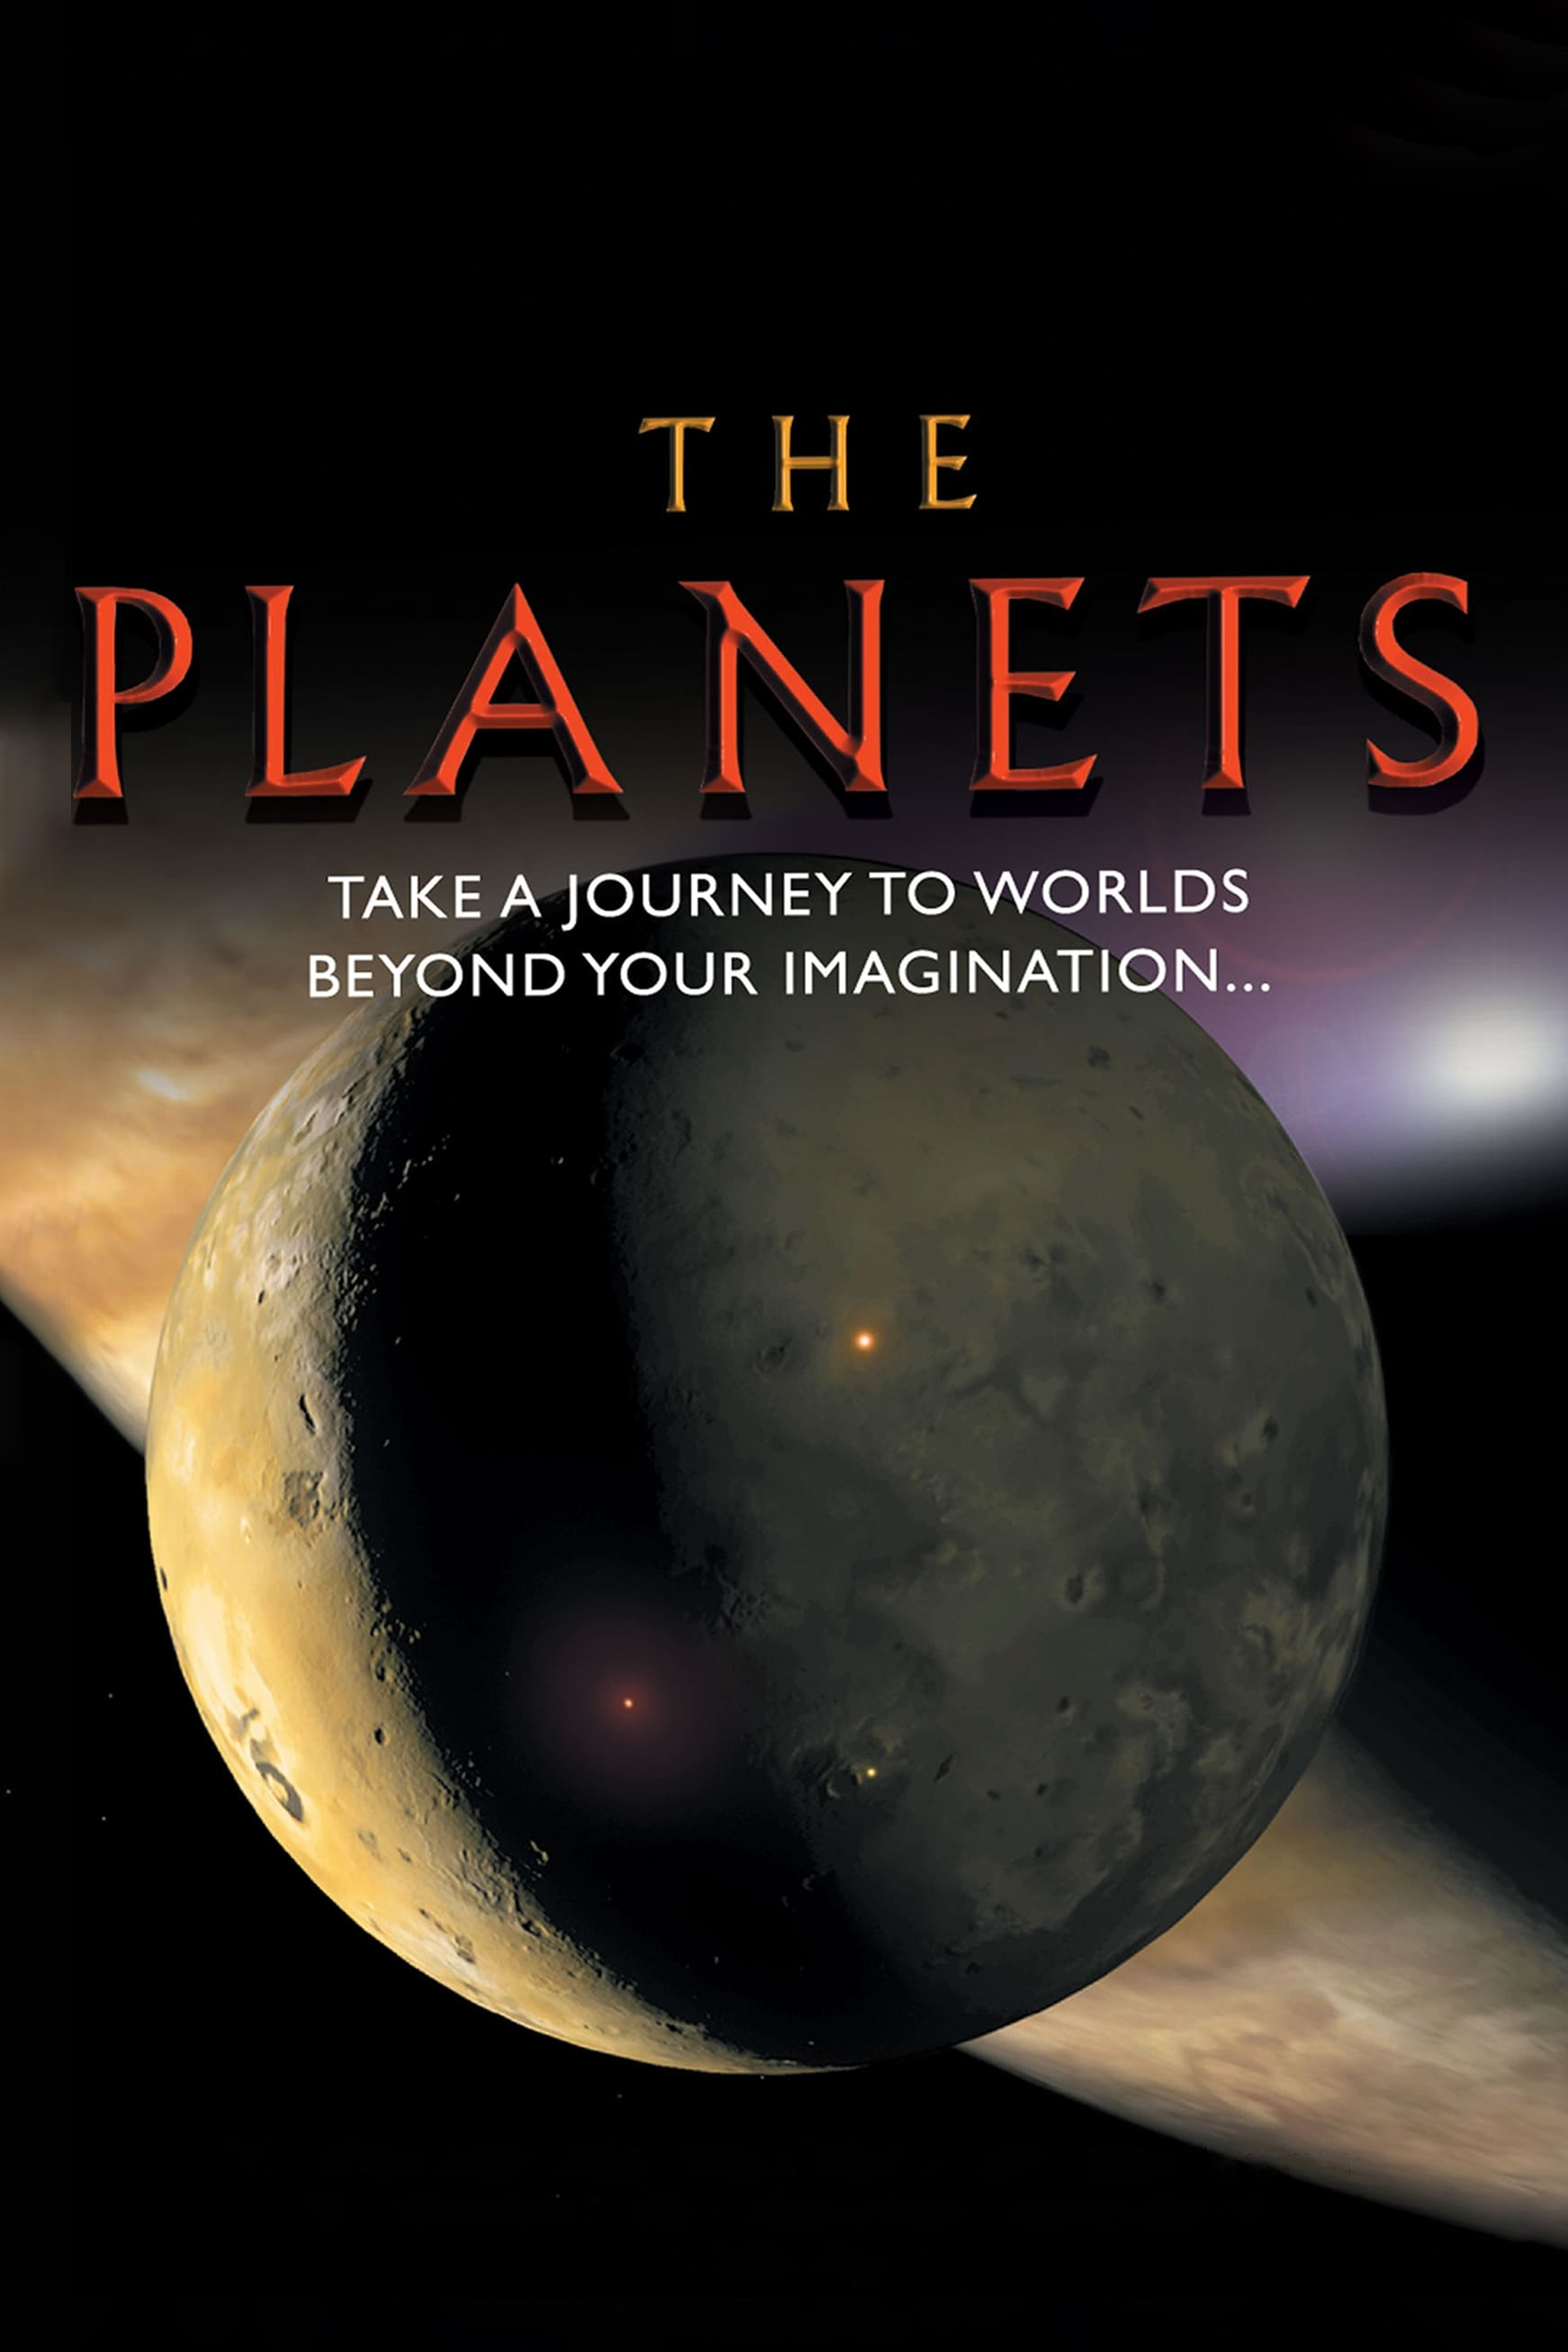 The Planets TV Shows About Exploration